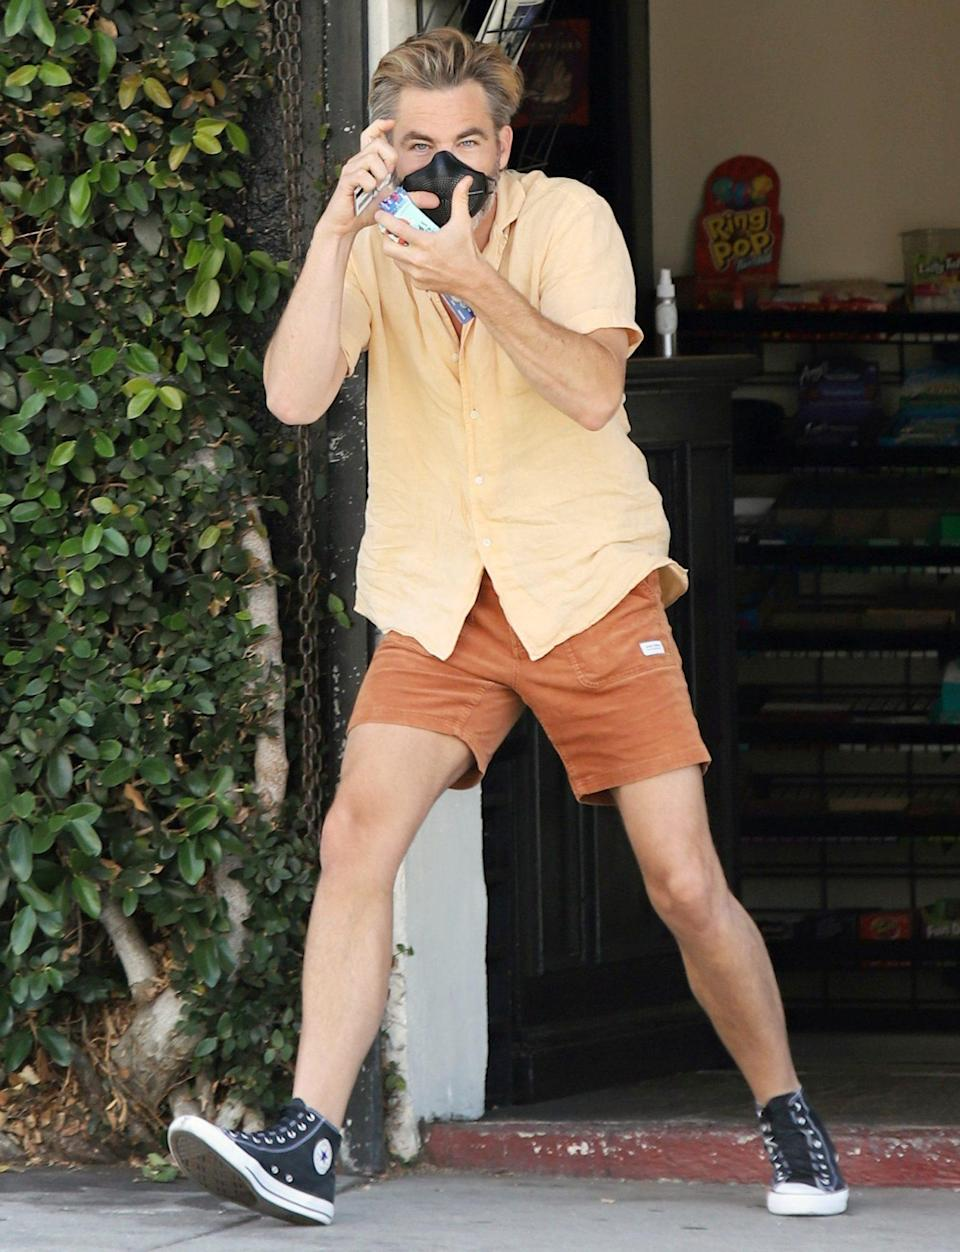 <p>Chris Pine takes a trip to the grocery store in L.A. on Sunday, pausing to pretend to take a photo of the paparazzi. </p>